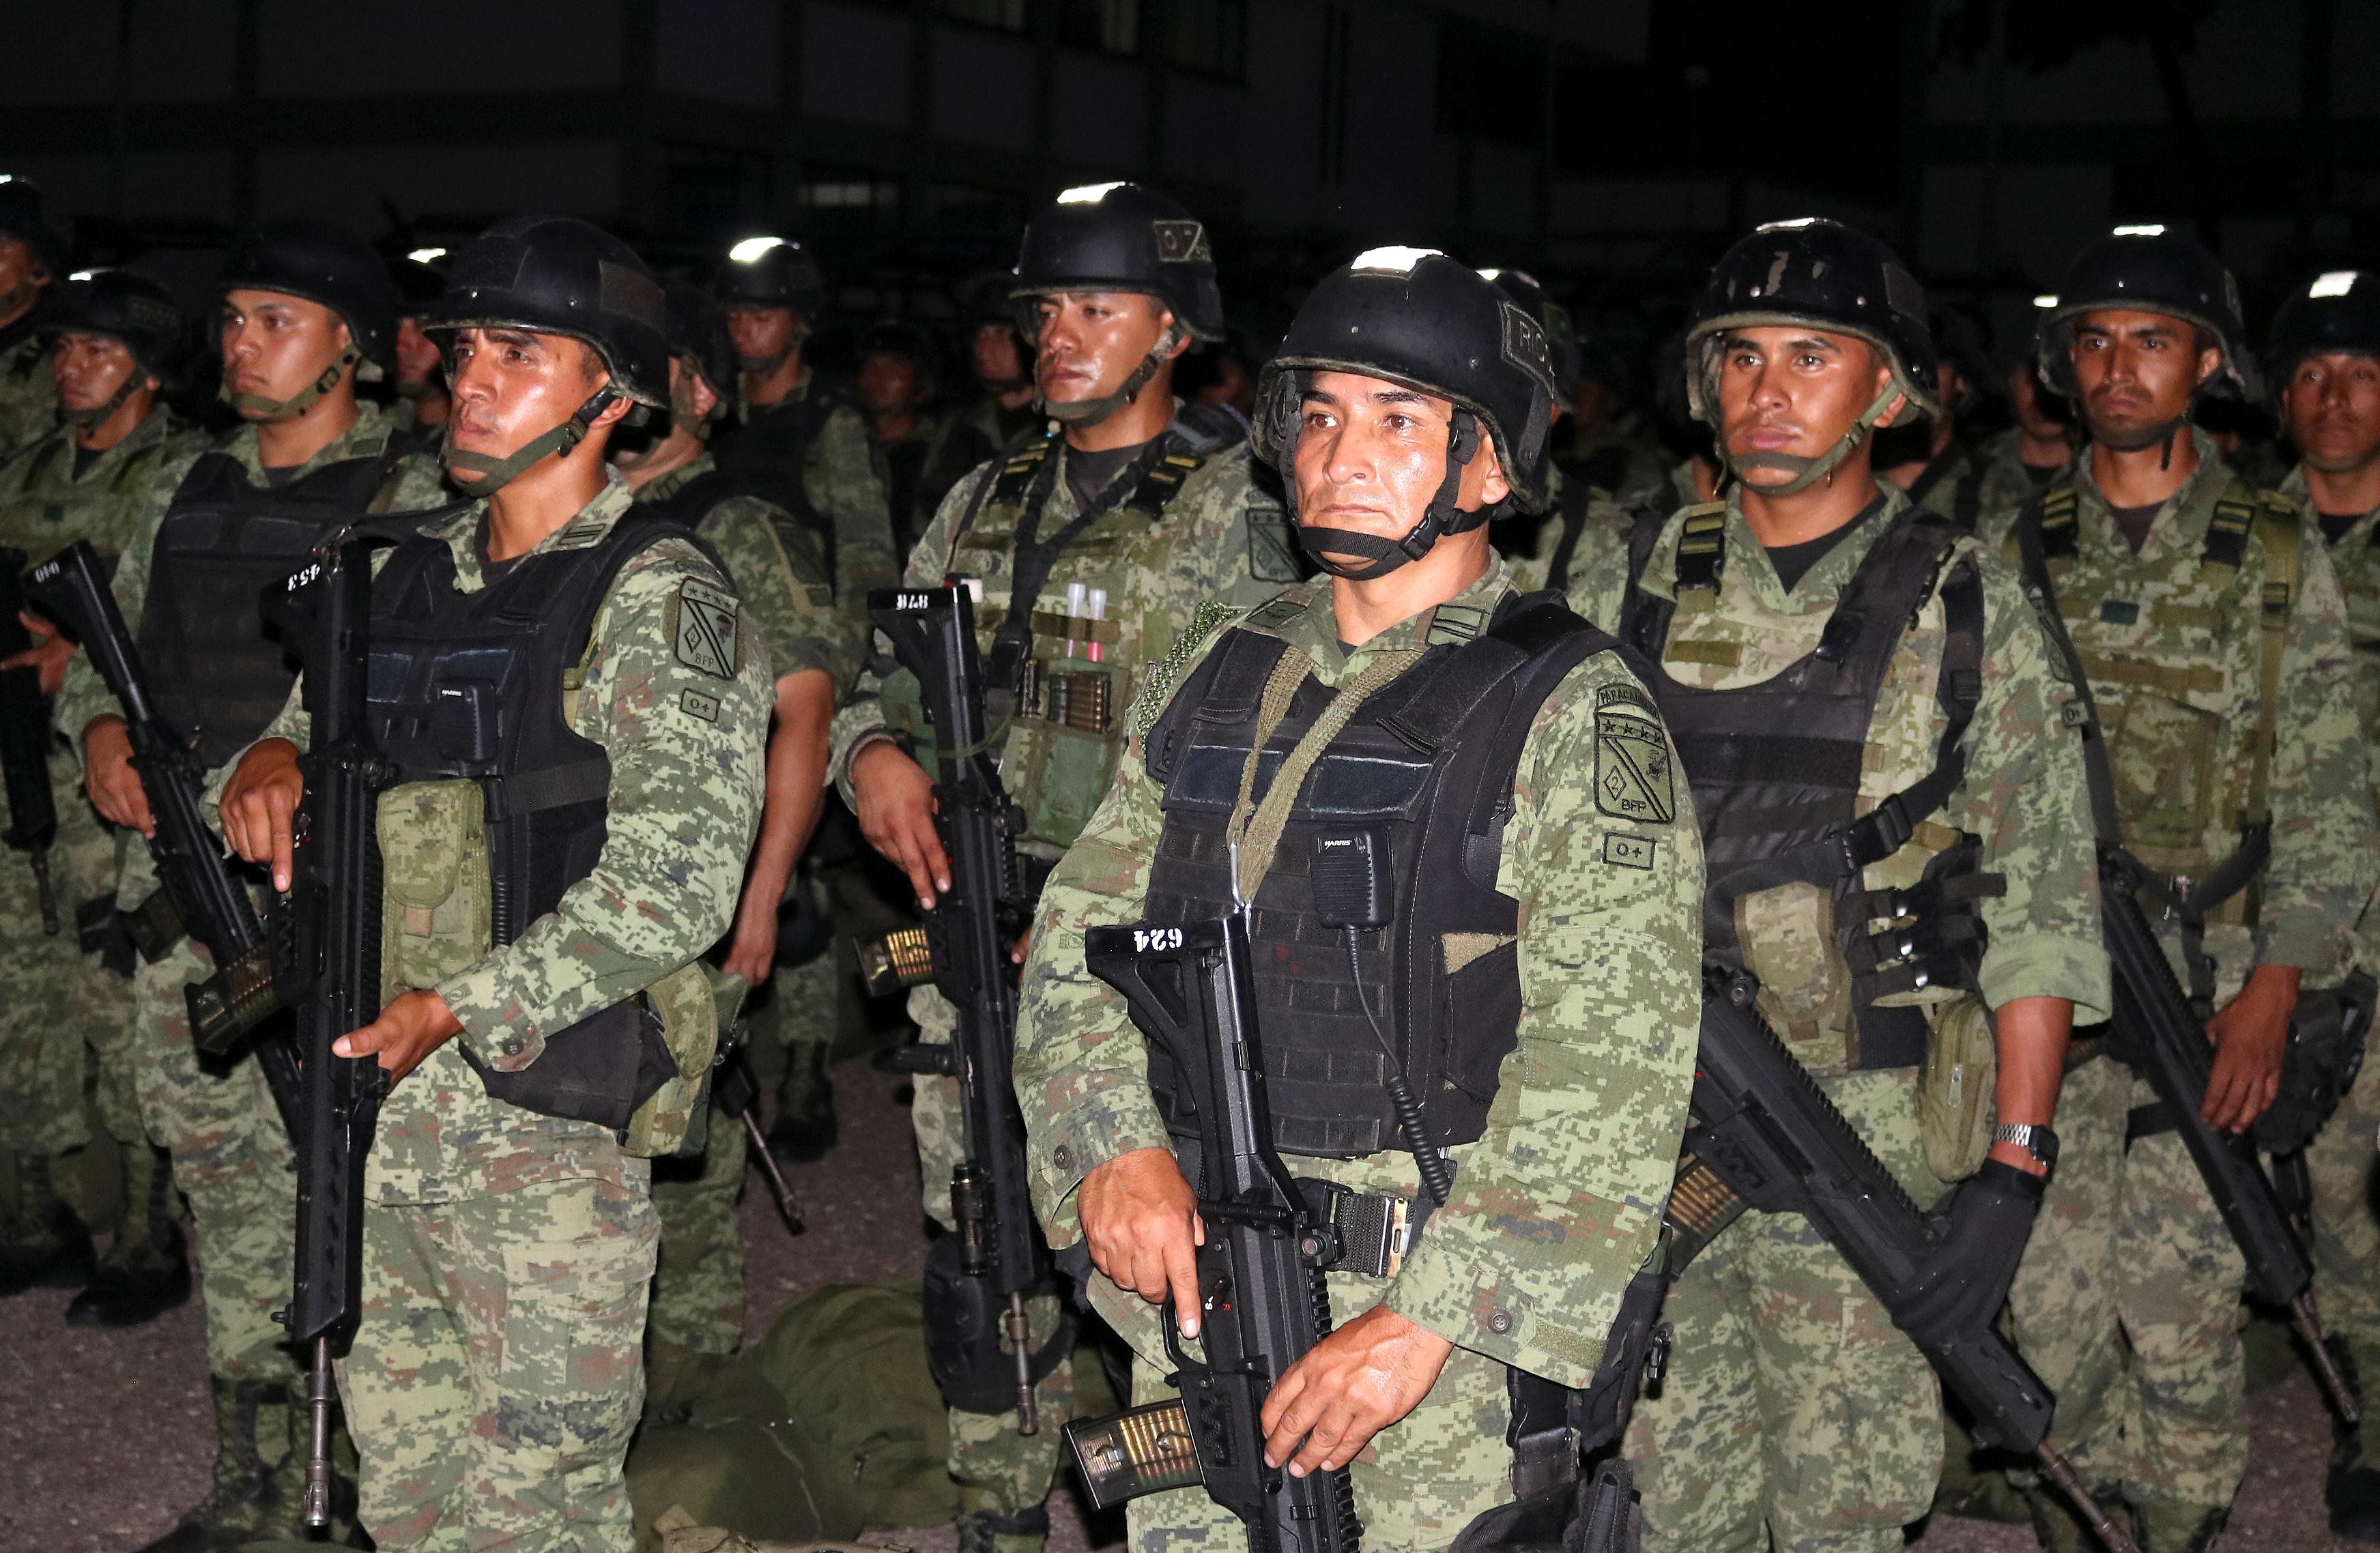 Mexico sends in elite troops to patrol city after cartel battle